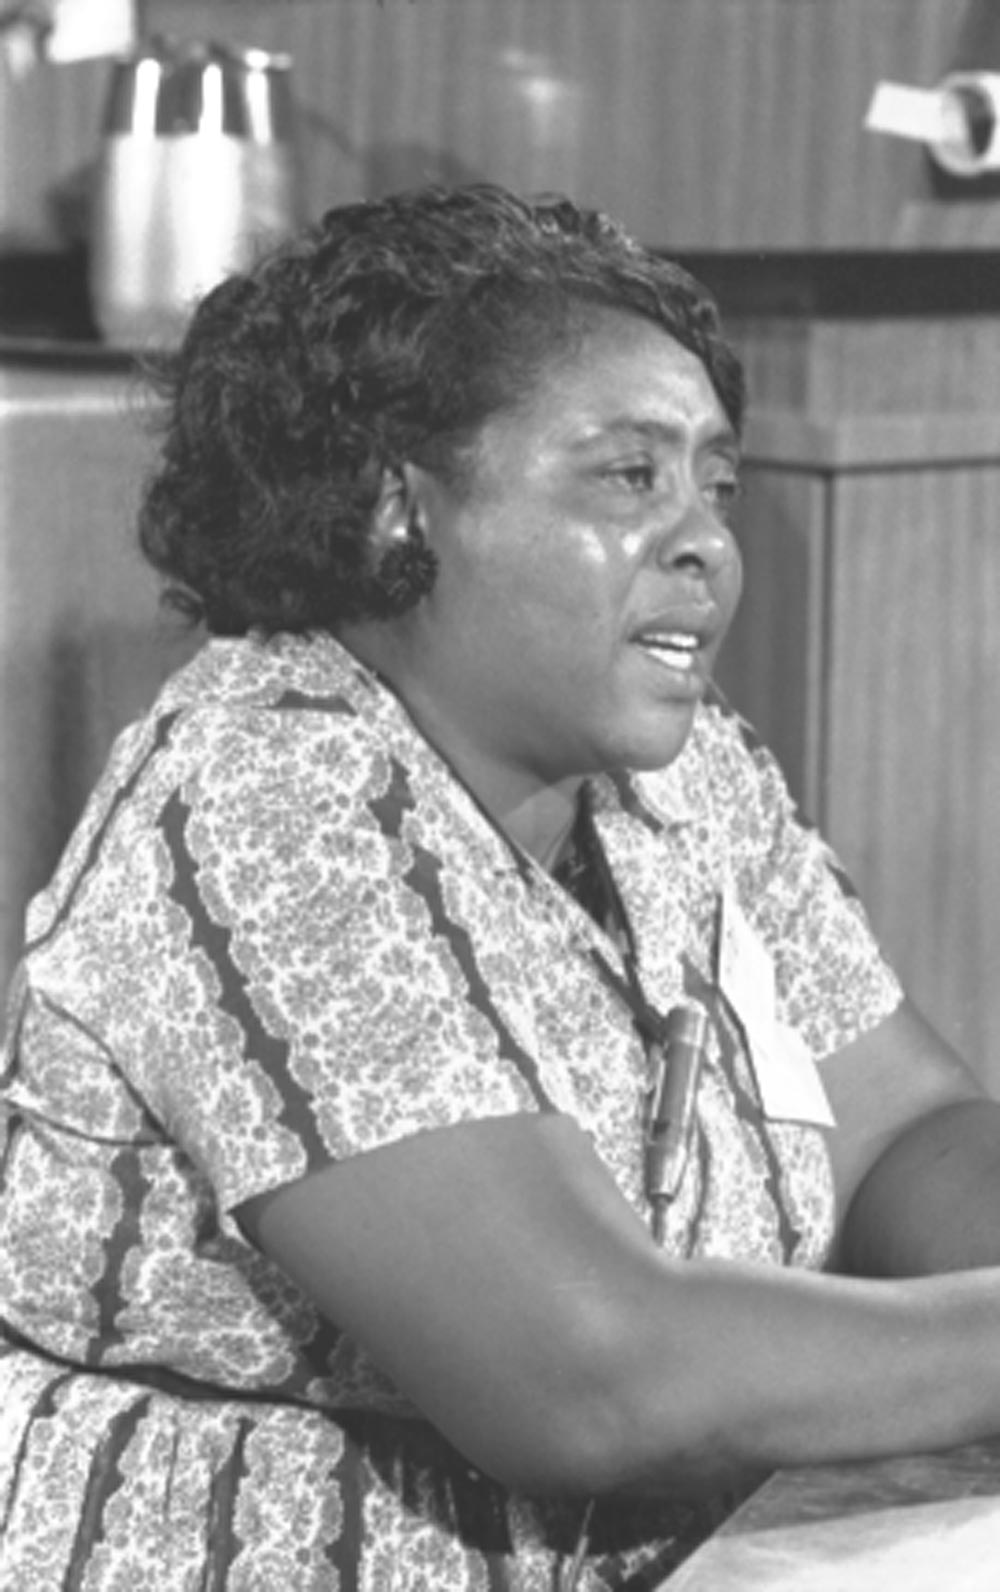 Fannie Lou Hamer, Mississippi Freedom Democratic Party delegate, at the Democratic National Convention in Atlantic City, New Jersey, August 22, 1964; photograph by Warren K. Leffler. (Library of Congress Prints and Photographs Division)